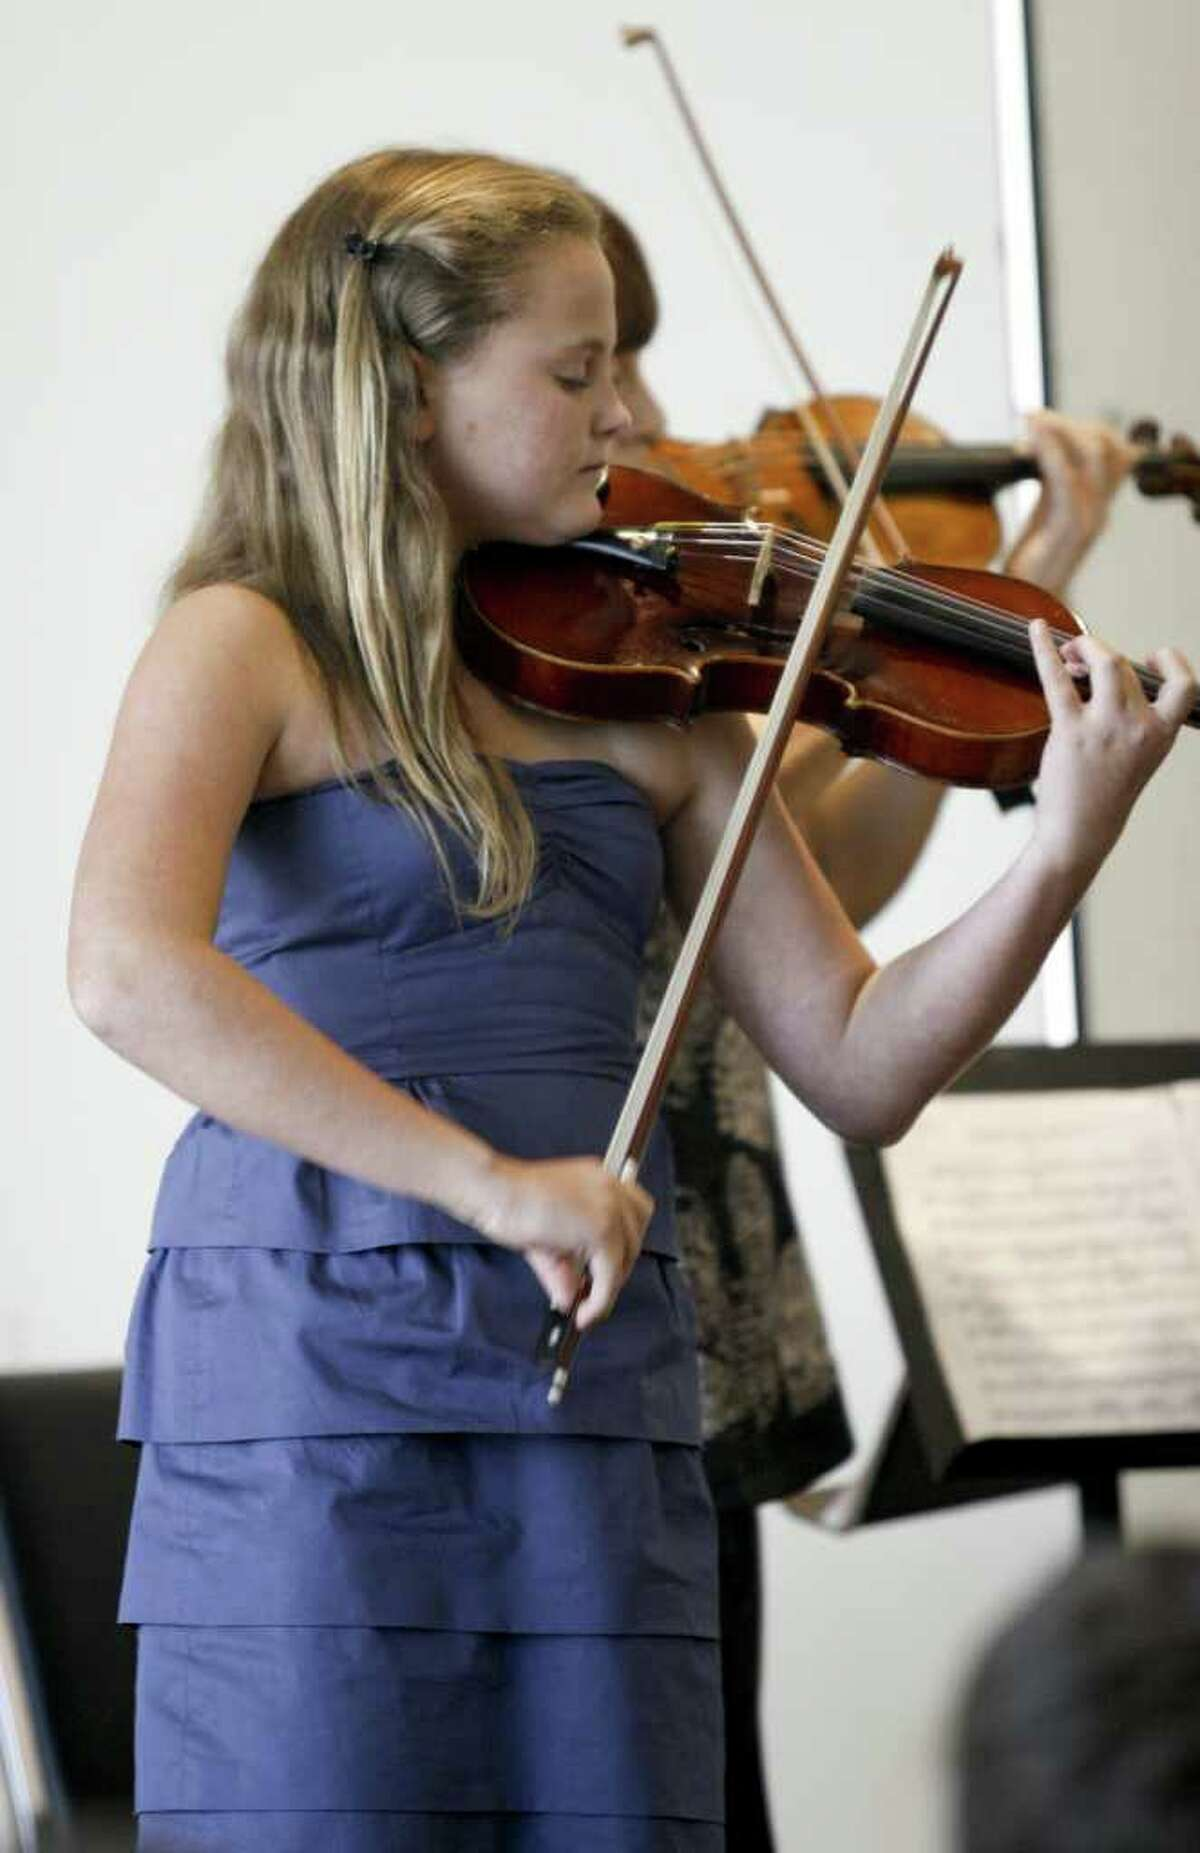 Anna Leunis of Darien, age 14, performs a duet with Asya Meshberg, Artistic Director of the Chamber Music Institute for Young Musicians, after receiving an award and scholarship from the Stamford Center for the Arts on Sunday, August 8, 2010.